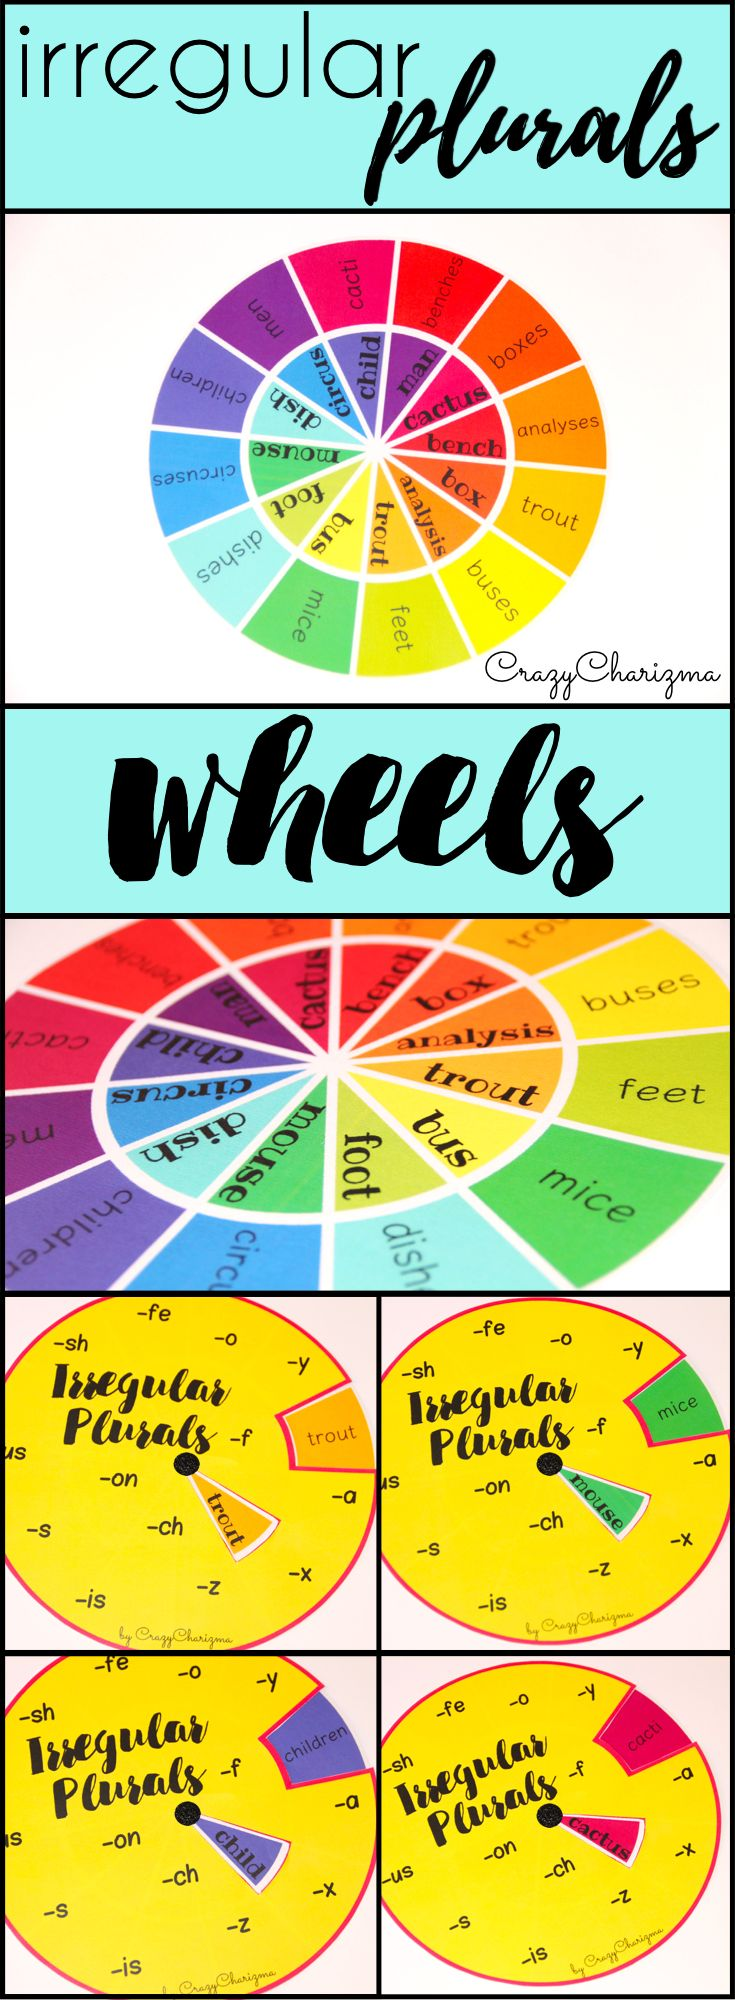 Have fun practicing irregular plurals in primary and elementary school. These wheels are bright way to practice different plural forms. 108 words to work with! Find 9 easy prep colorful and 9 black and white wheels inside. | CrazyCharizma at https://www.teacherspayteachers.com/Store/Crazycharizma